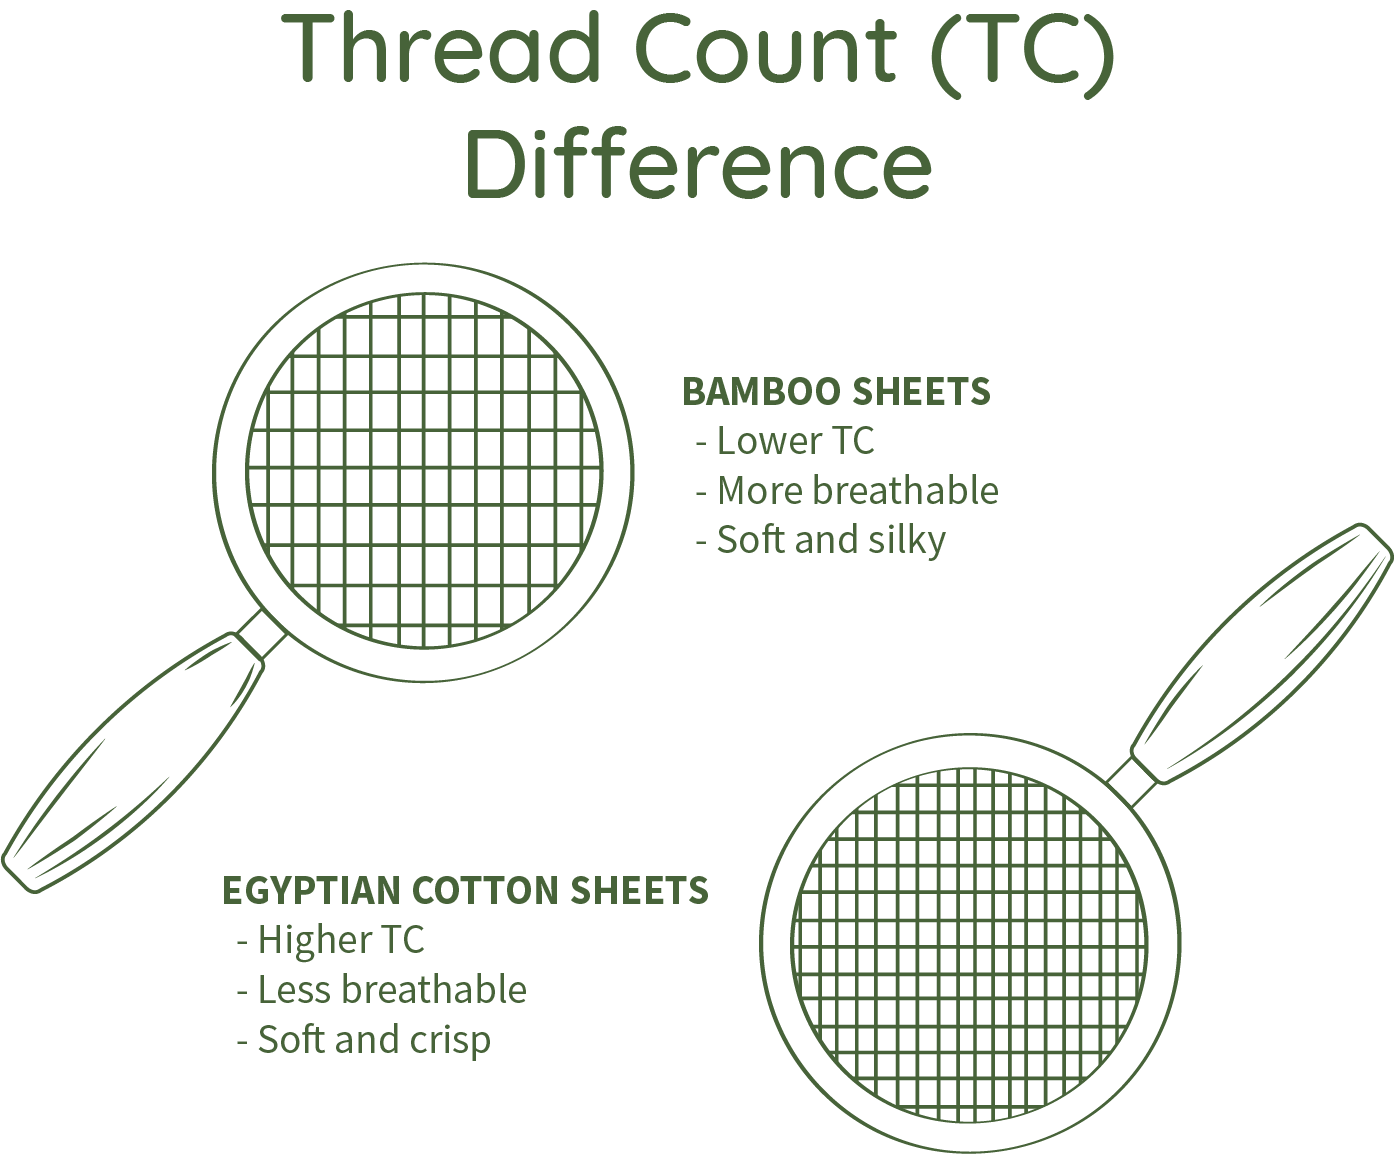 Thread Count difference between Bamboo beddings and Egyptian Cotton